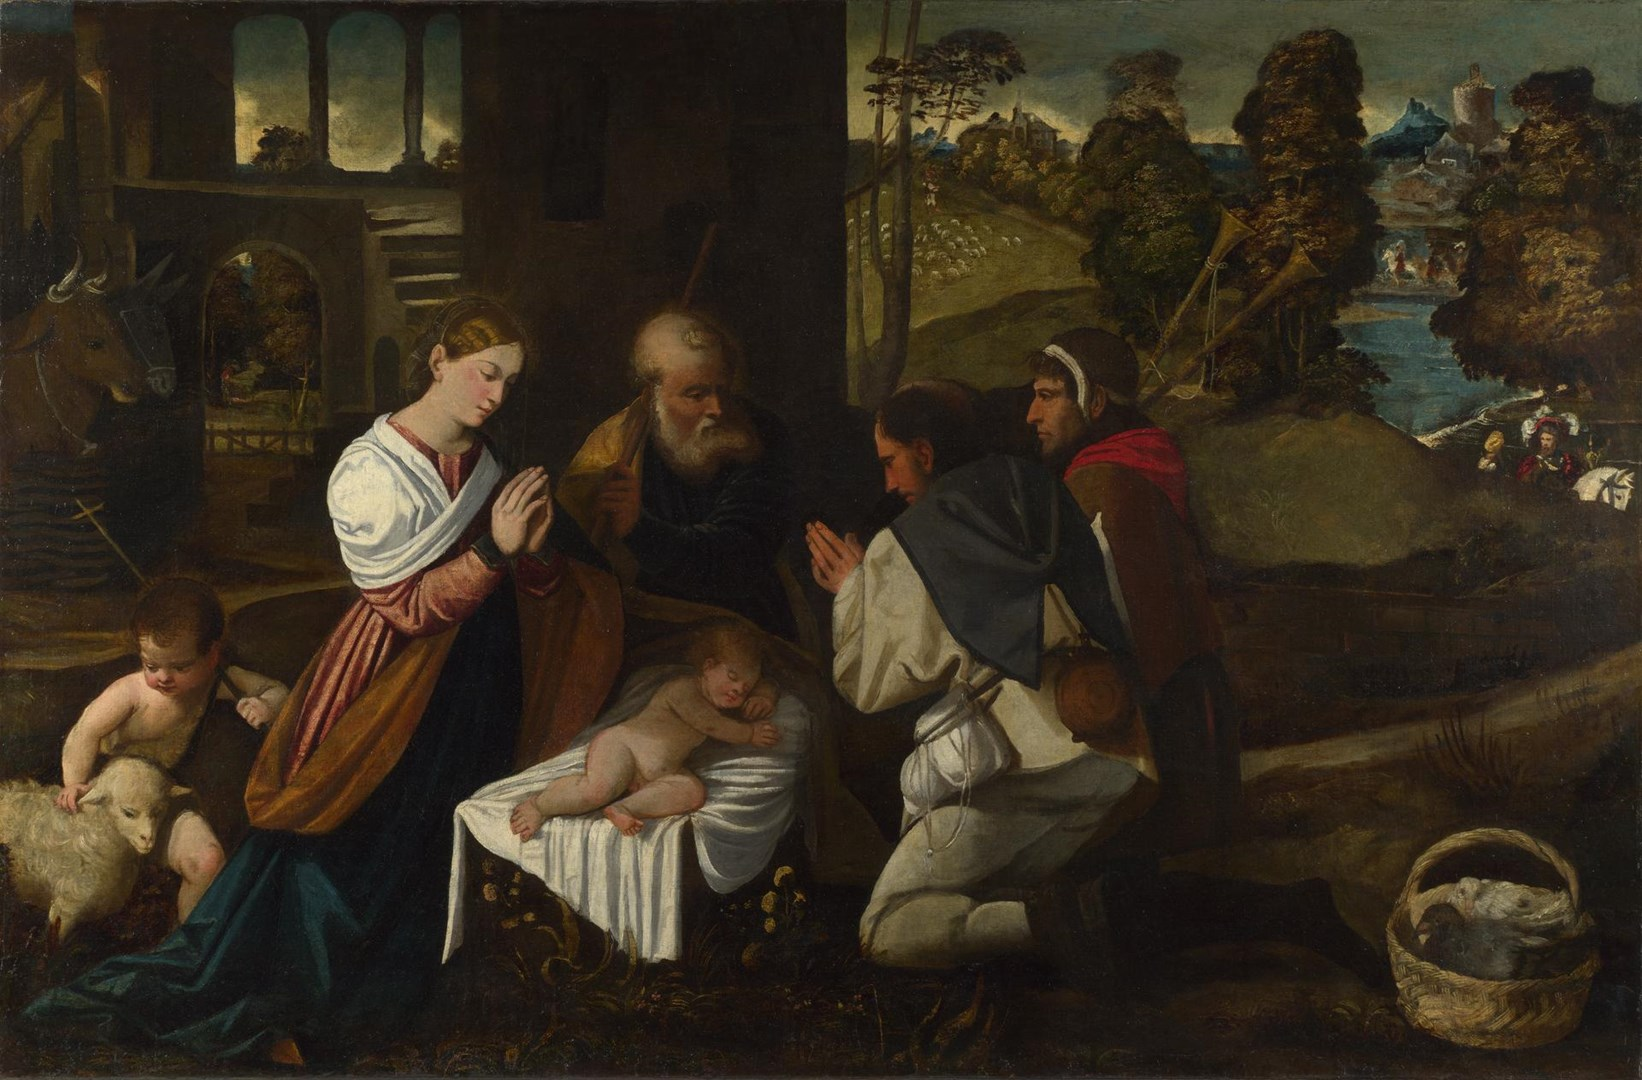 The Adoration of the Shepherds by Probably by Bernardino da Asola